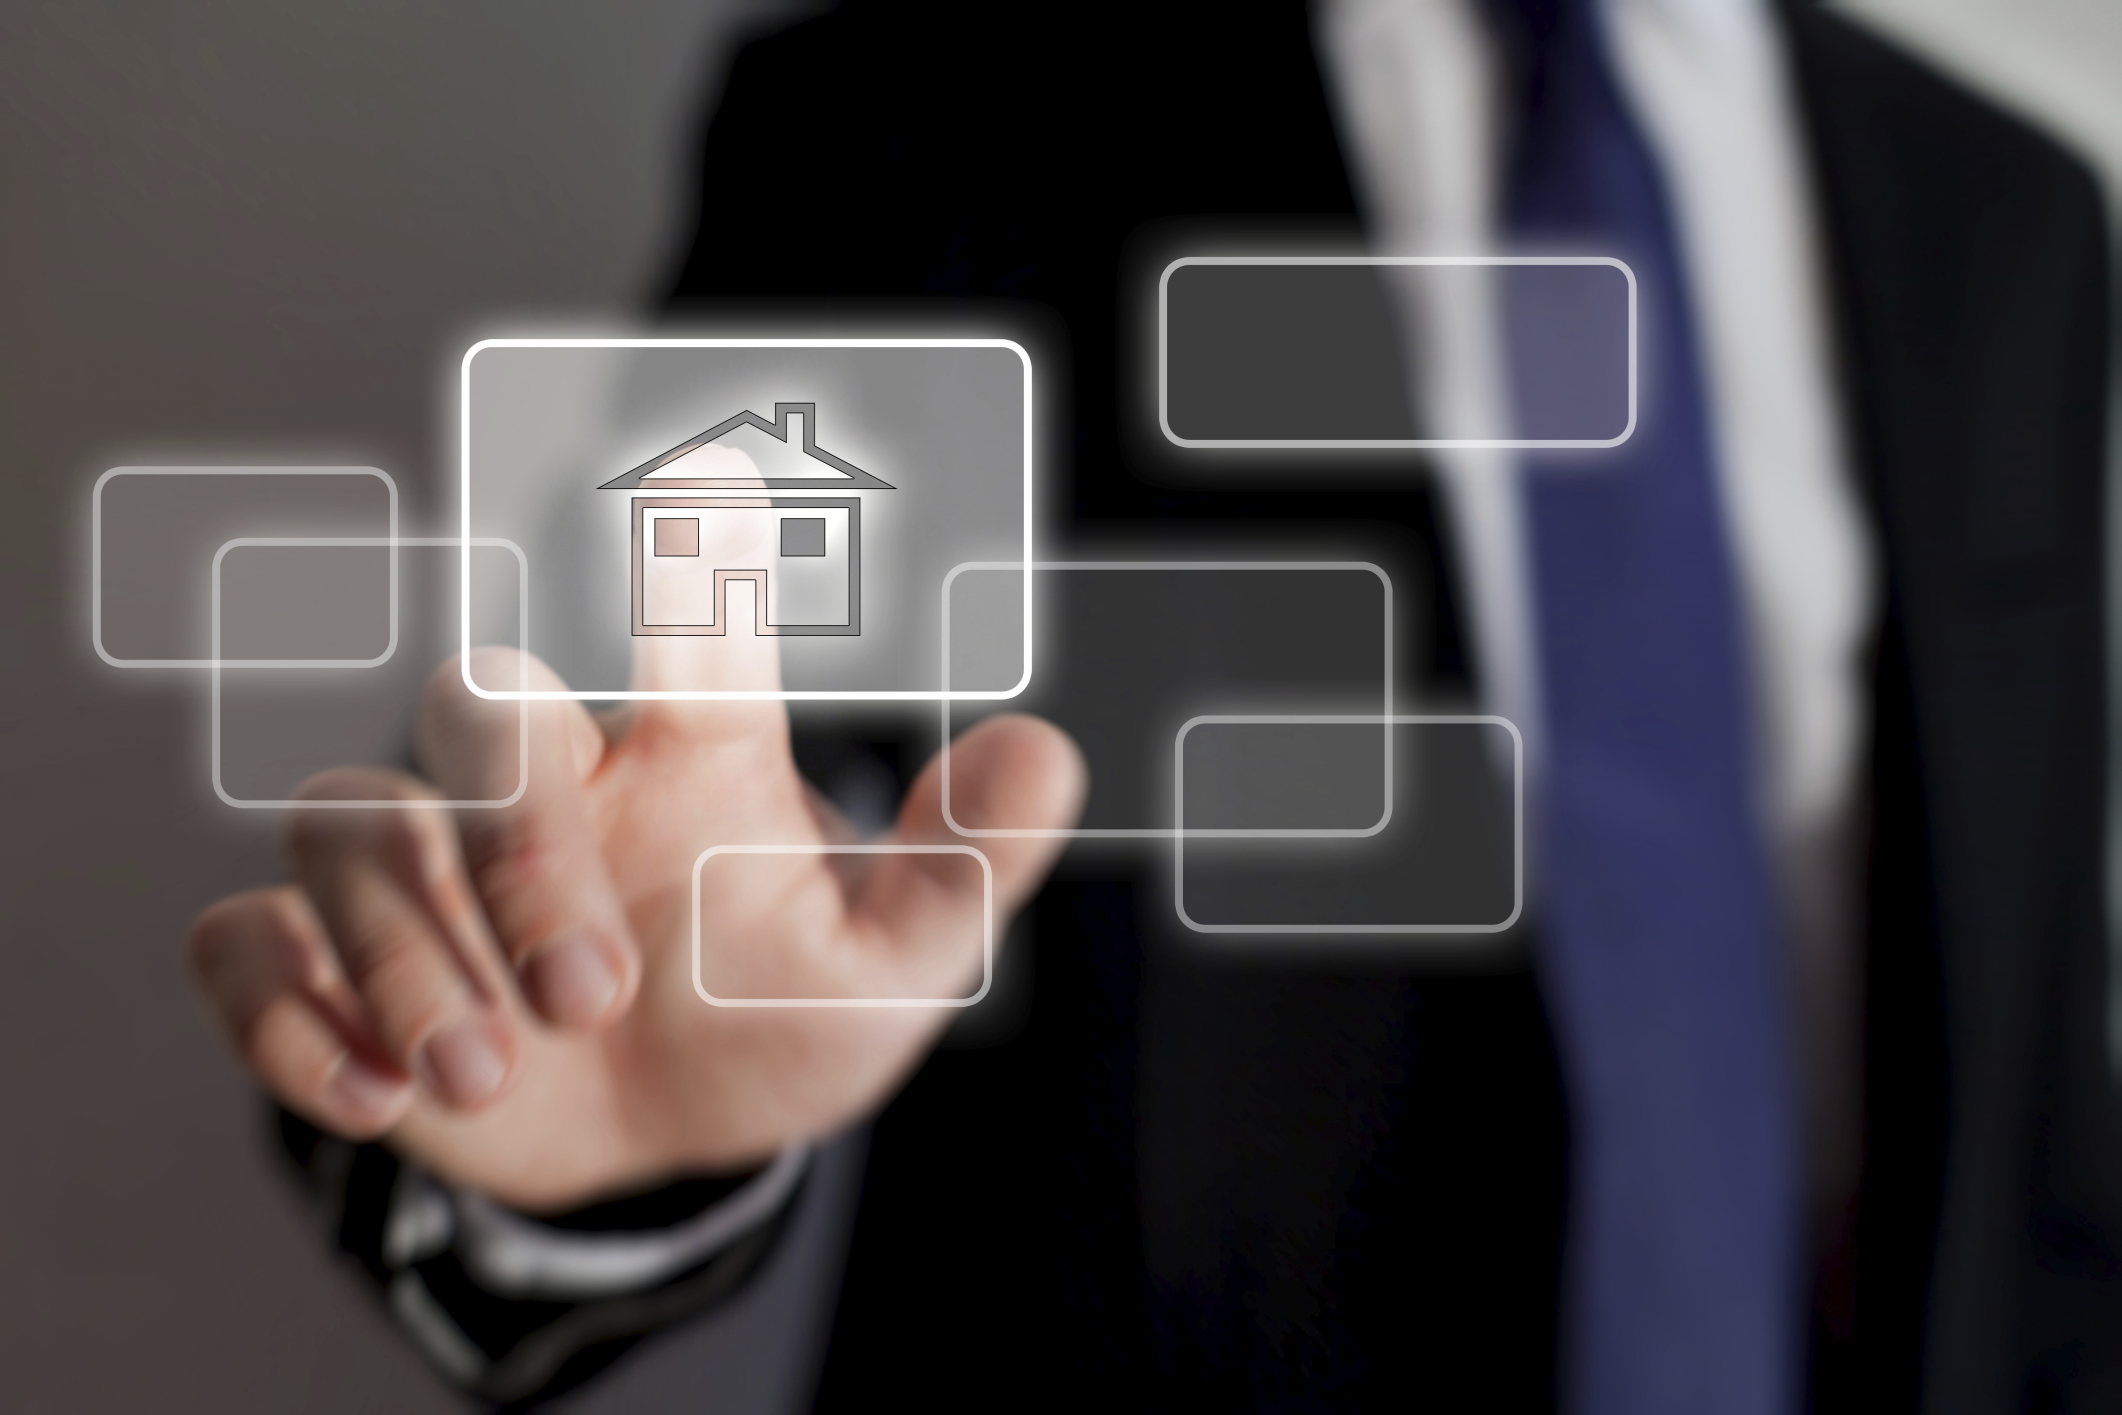 Home Automation and Security systems